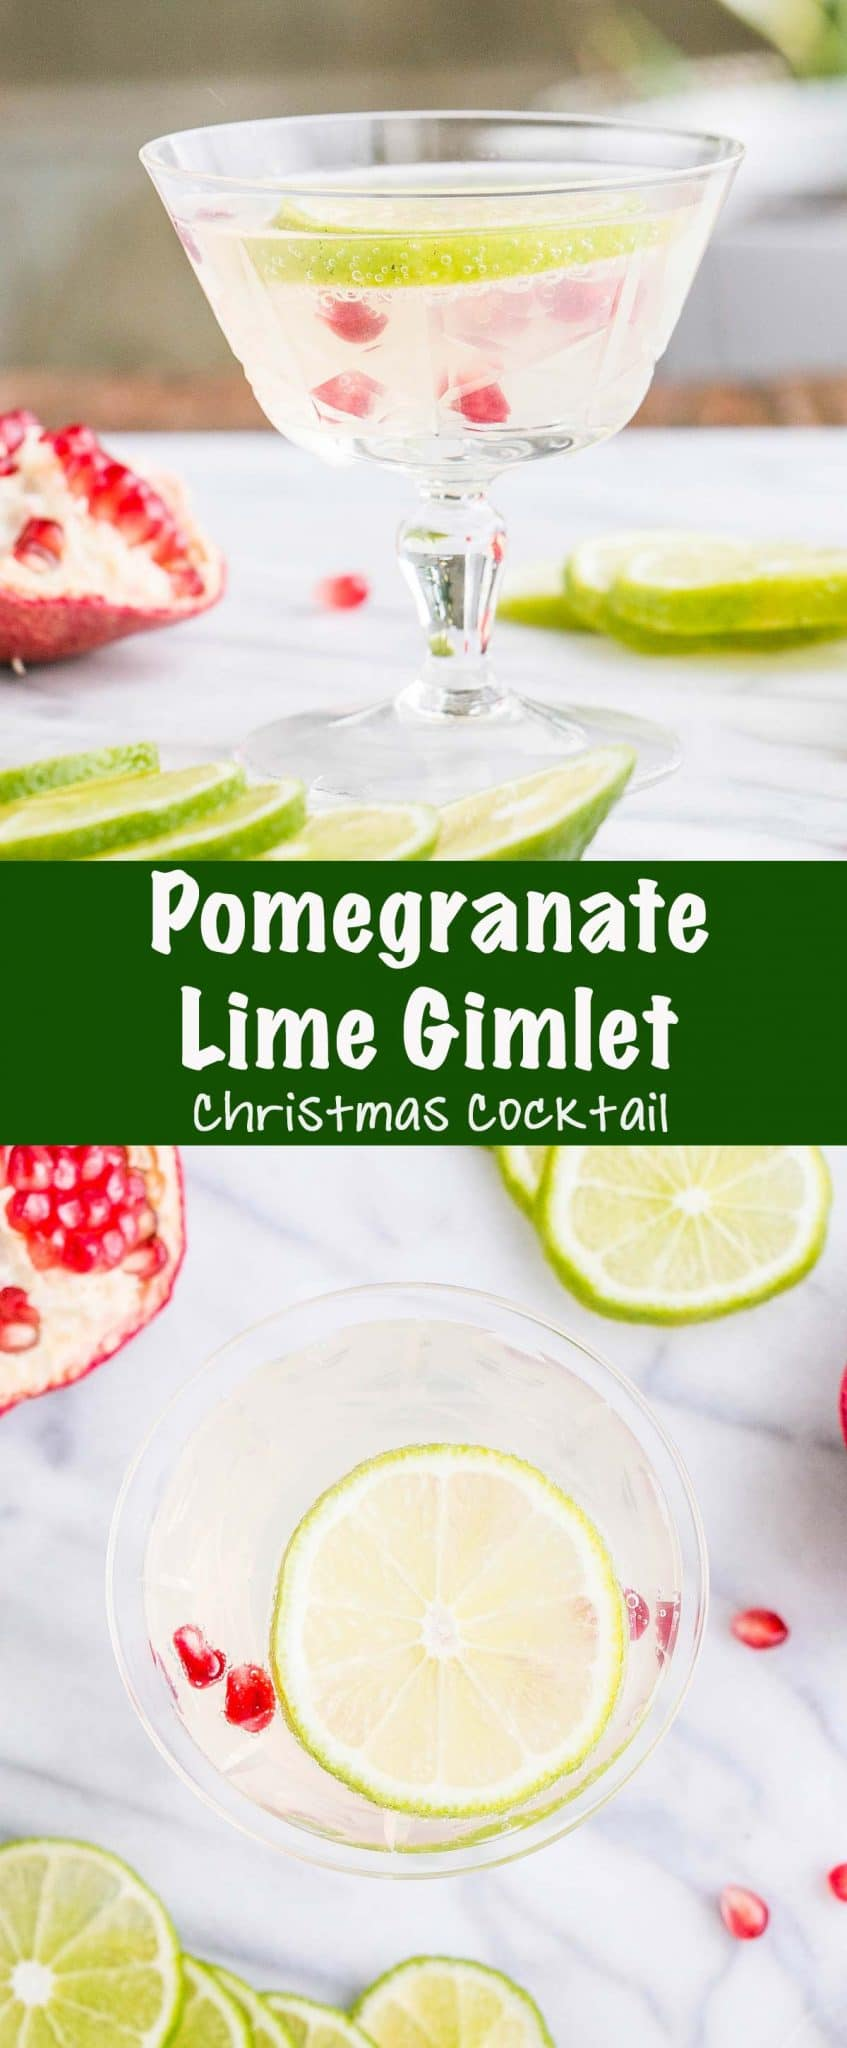 Pomegranate Lime Gimlet Long Pin